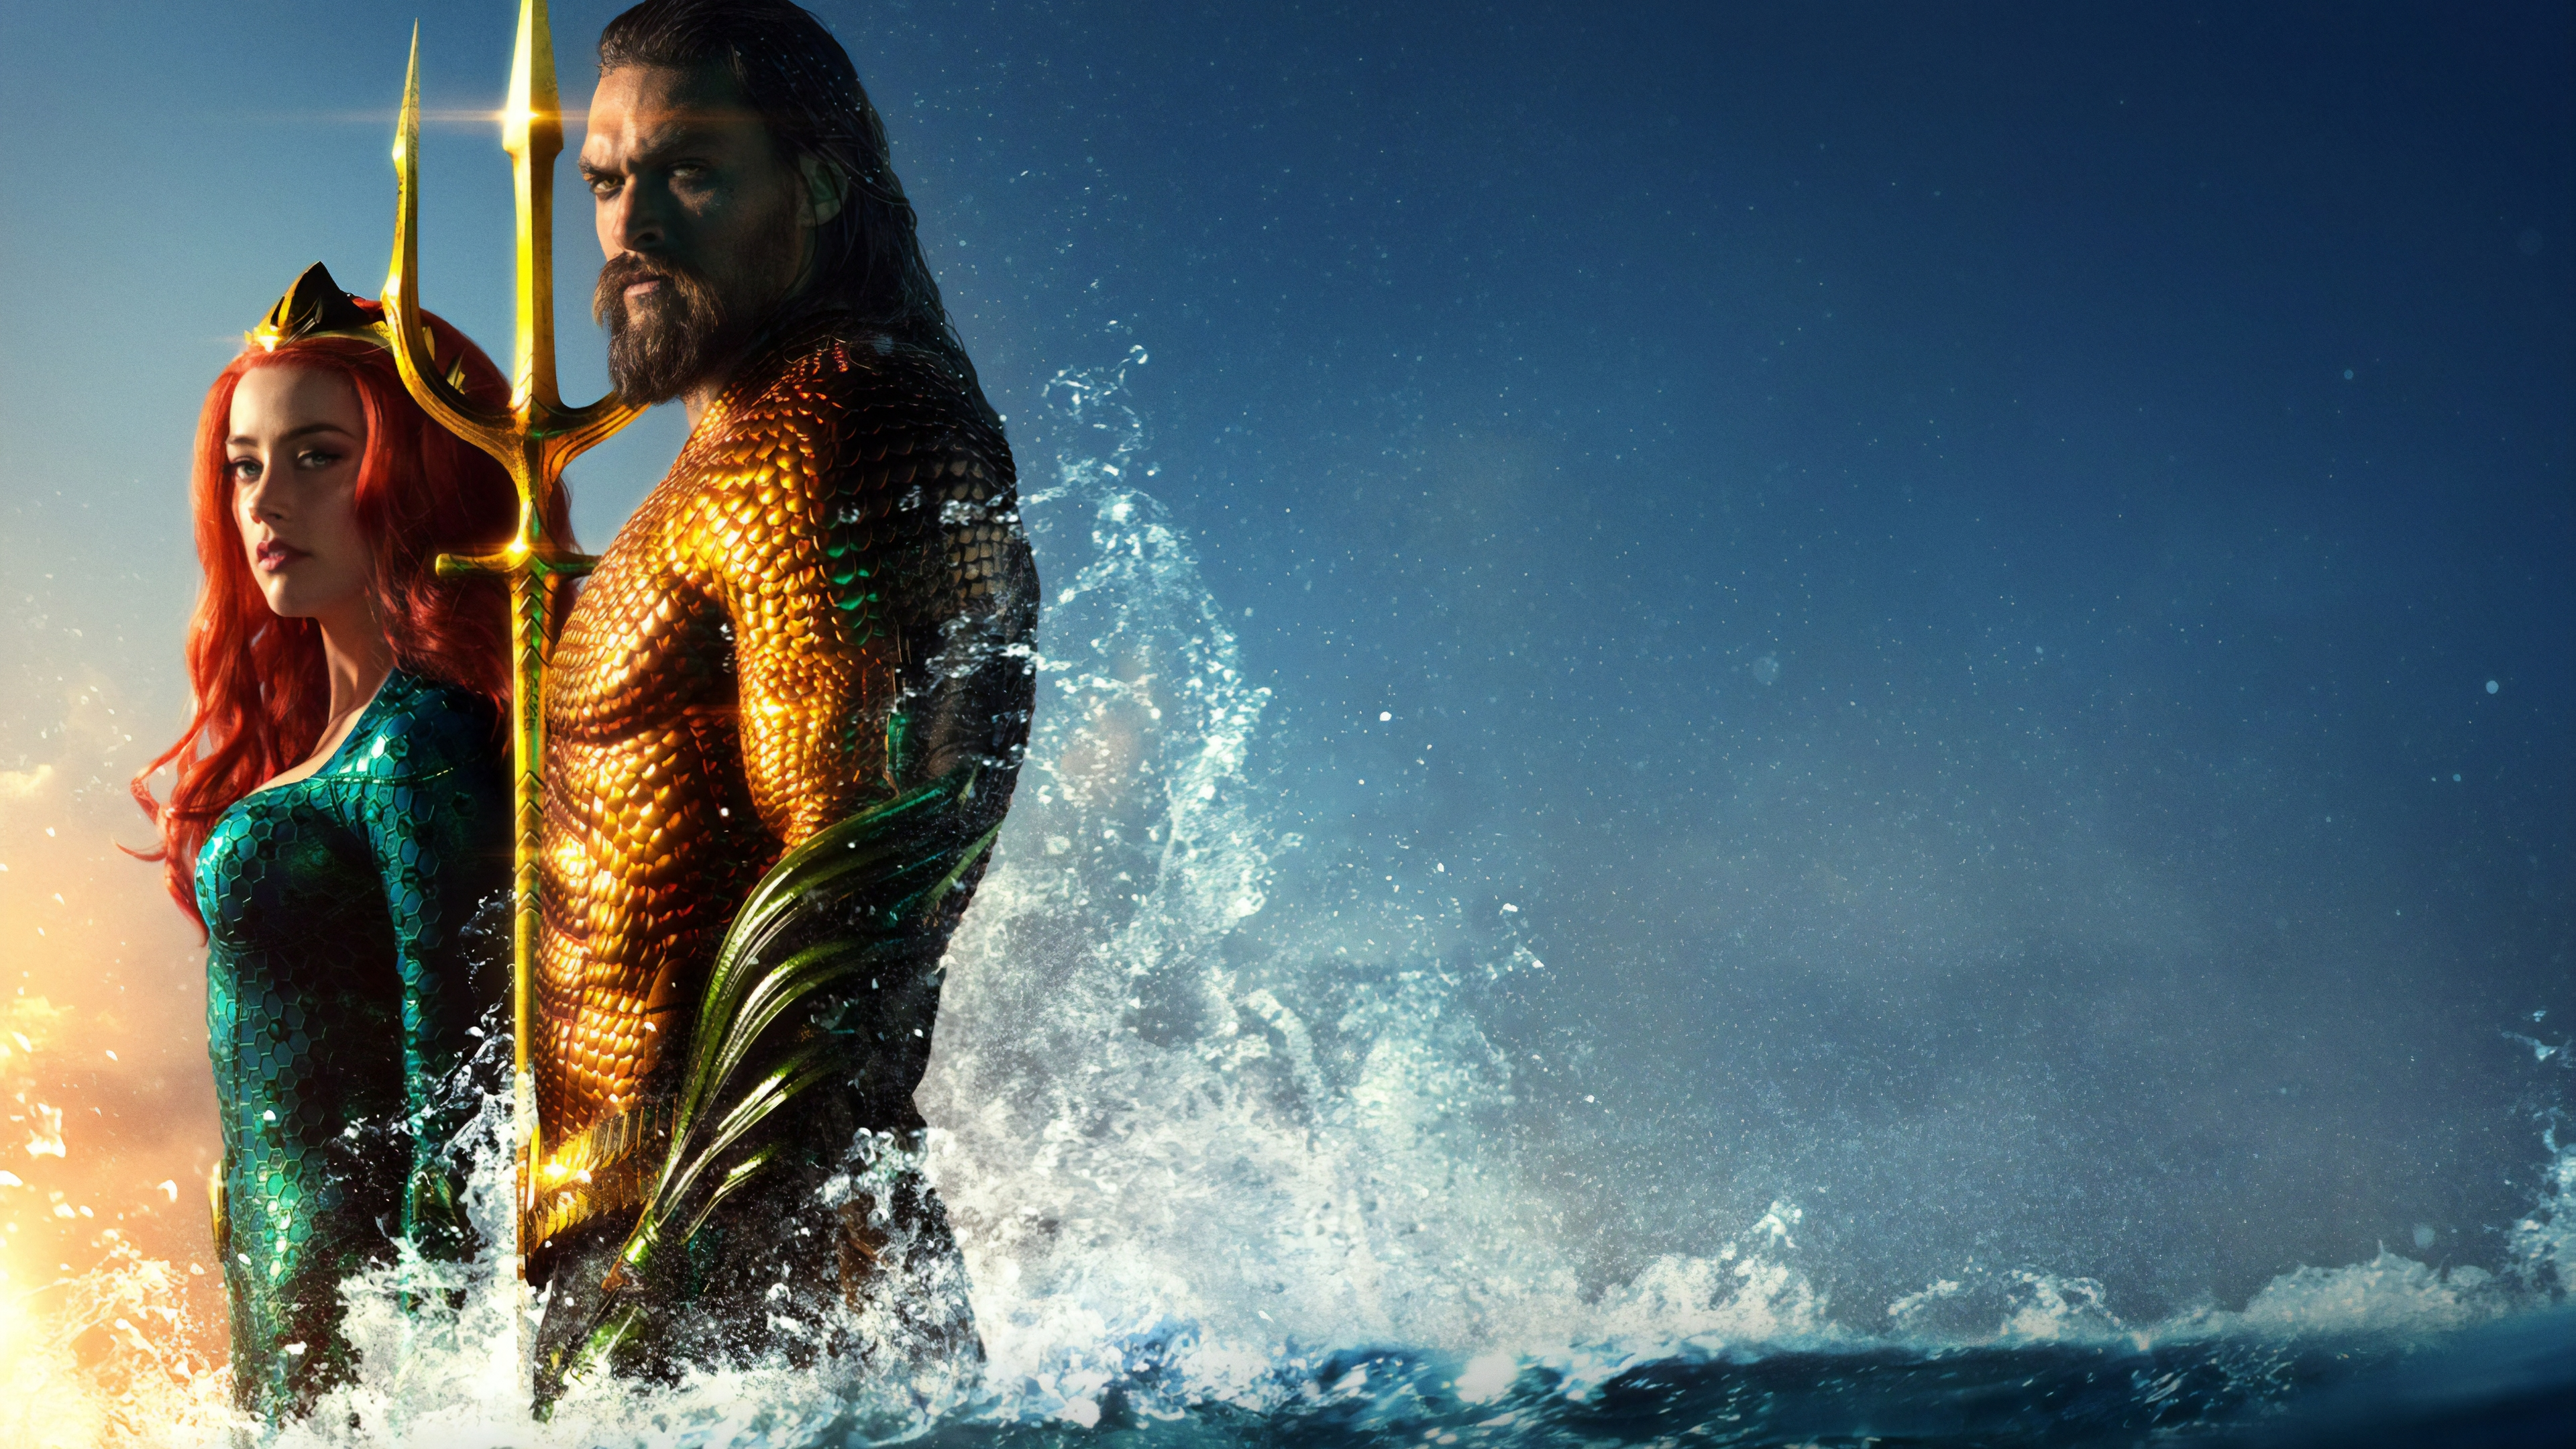 aquaman 2018 movie 5k kv 3840x2160 - Aquaman 4k 2018 movie - aquaman movie wallpapers, aquaman hd wallpapers, aquaman gold shield 4k, aquaman gold 4k, aquaman 4k wallpapers, Aquaman 2018 wallpapers